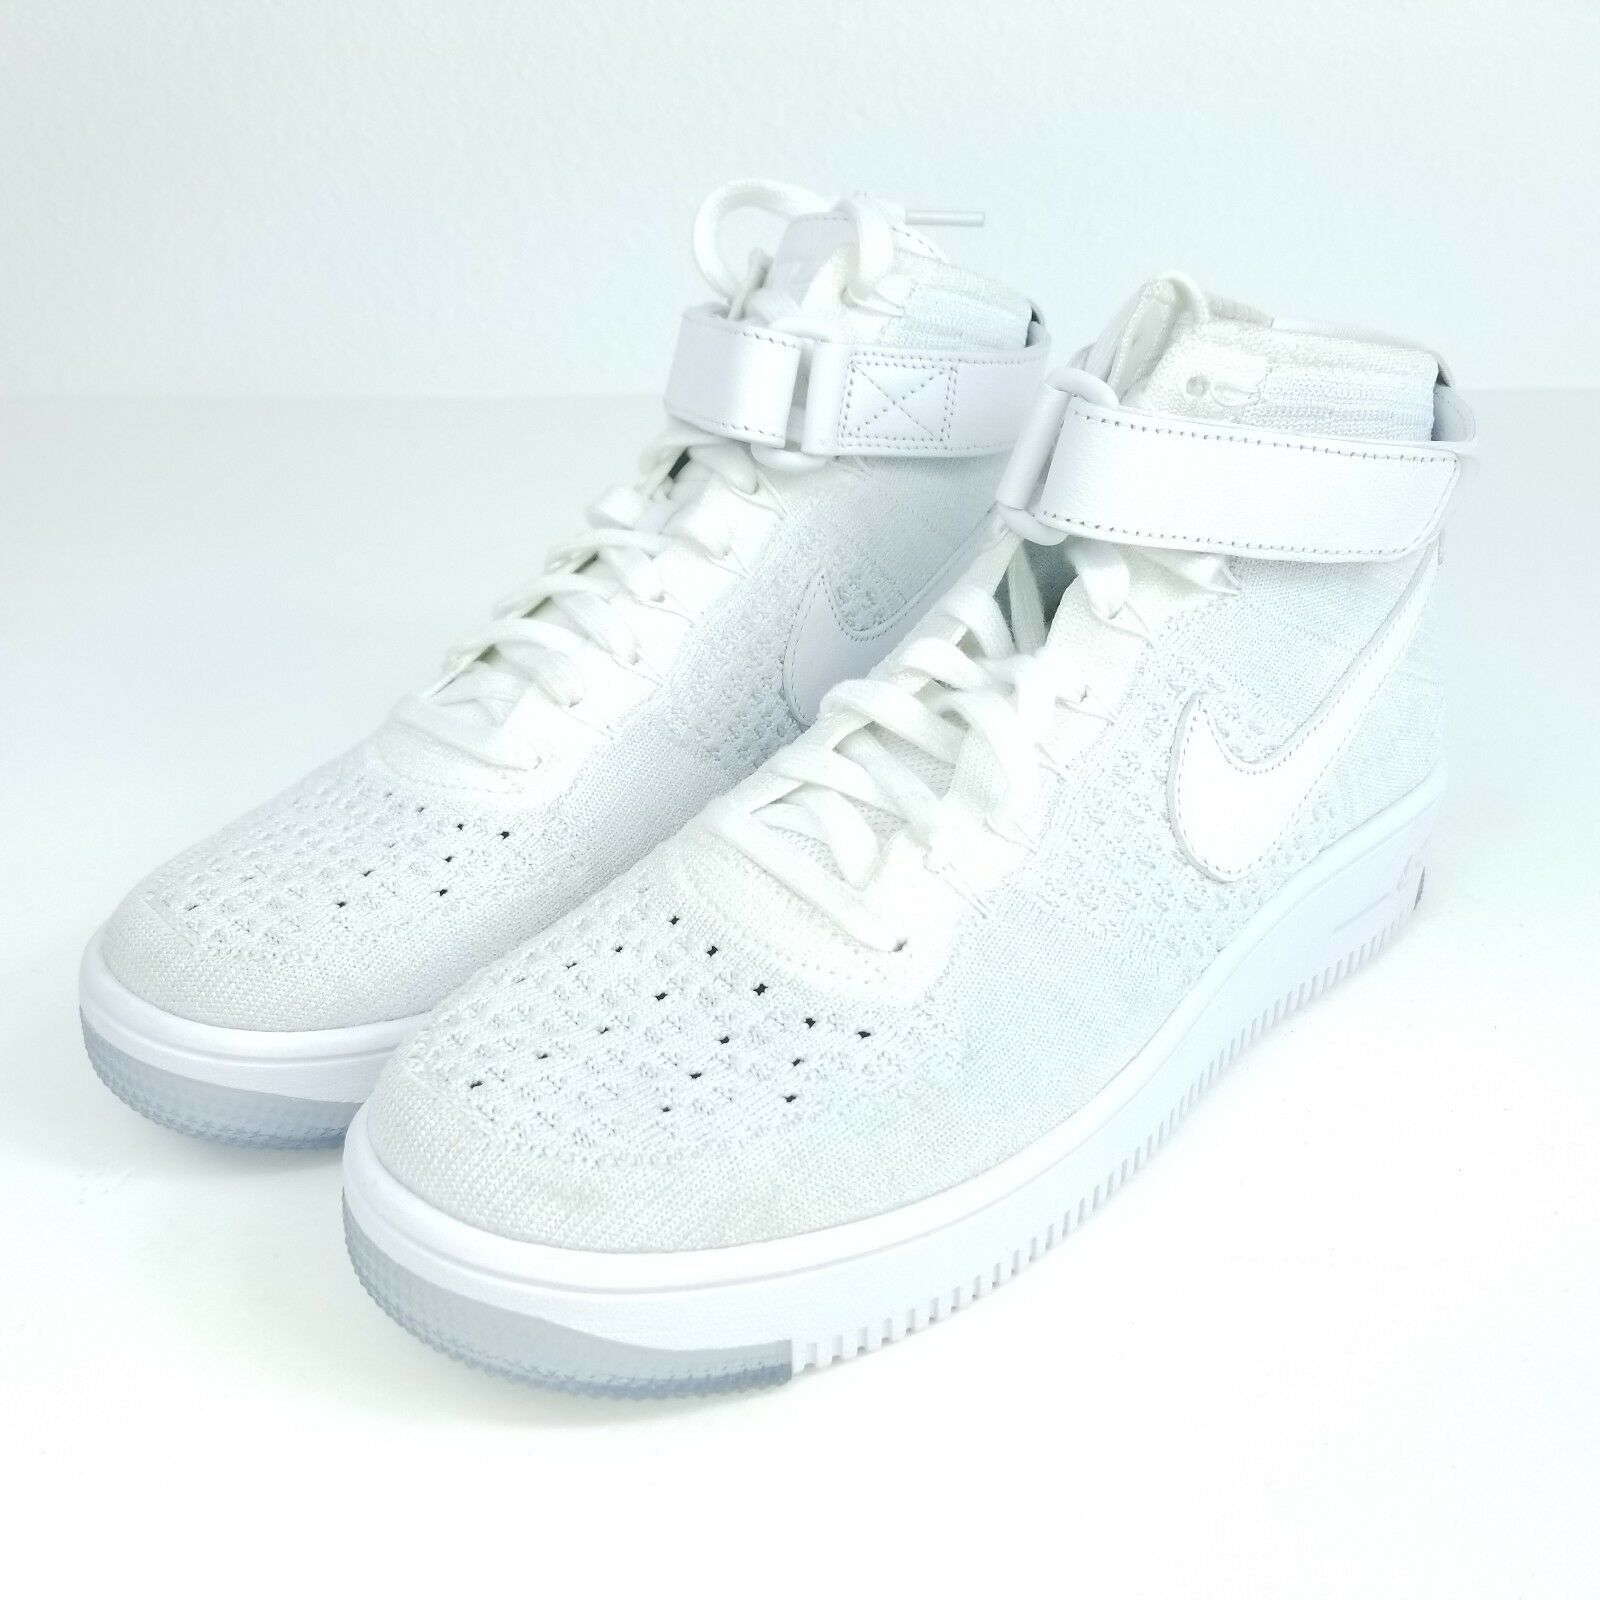 NIKE AF1 Flyknit Womens Sz 9.5 Shoes White/Pure Platinum 818018 100